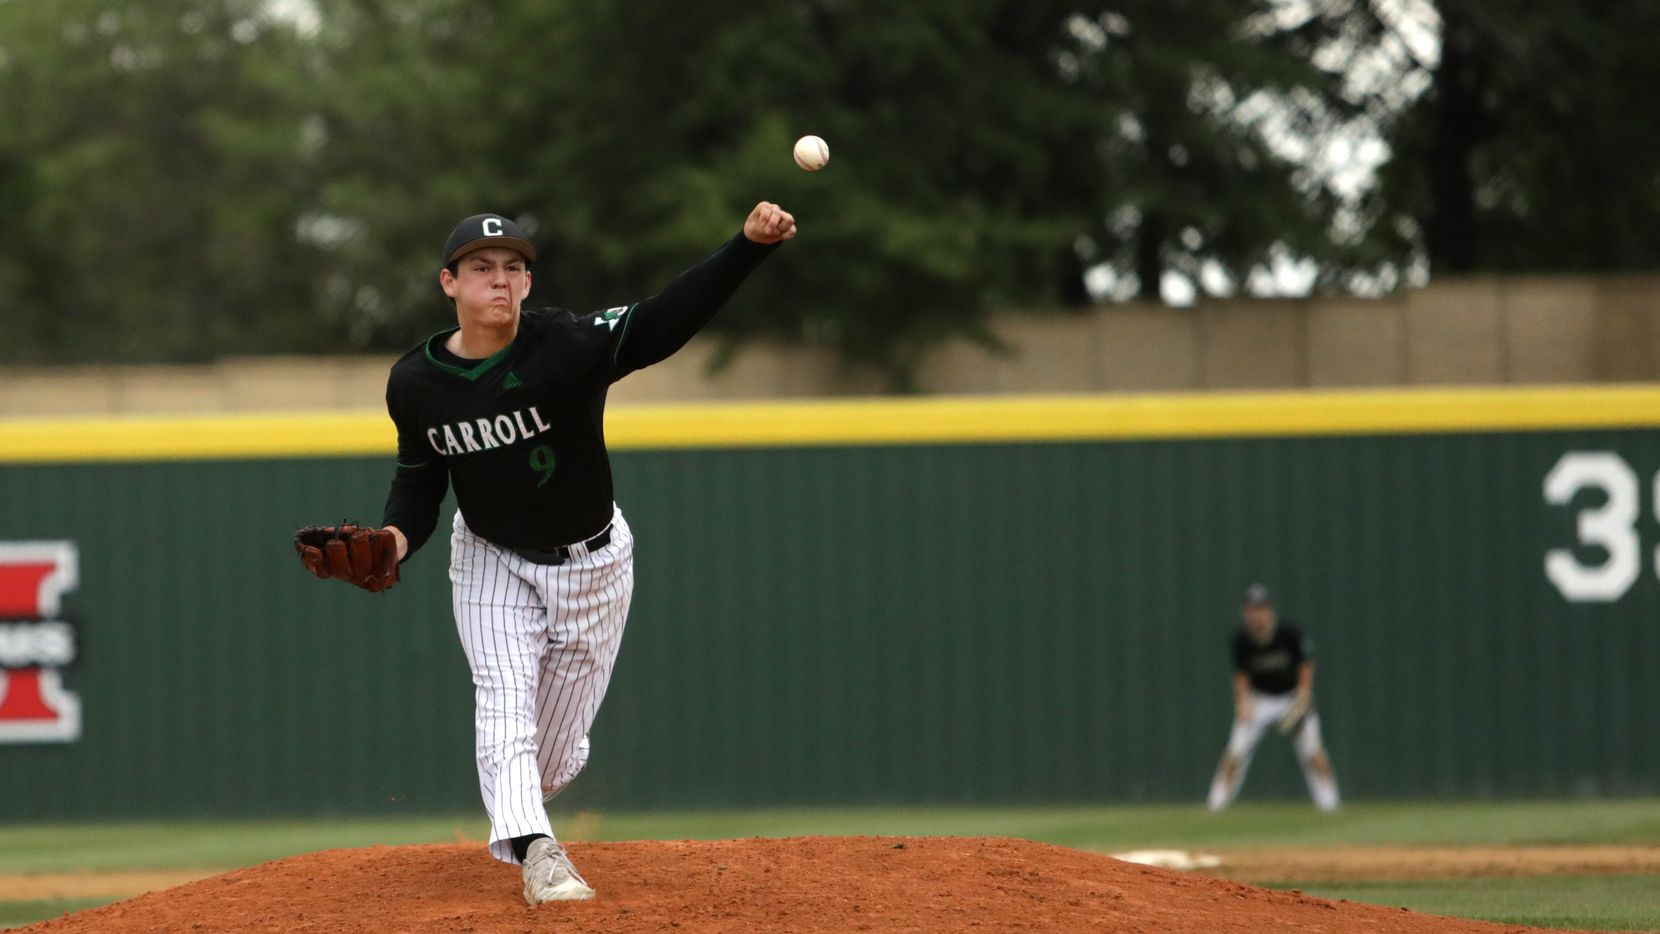 Southlake Carroll High School player #9, Owen Proksch, pitches during a baseball playoff game at the Flower Mound Marcus High School baseball field in Flower Mound, TX, on May 28, 2021.